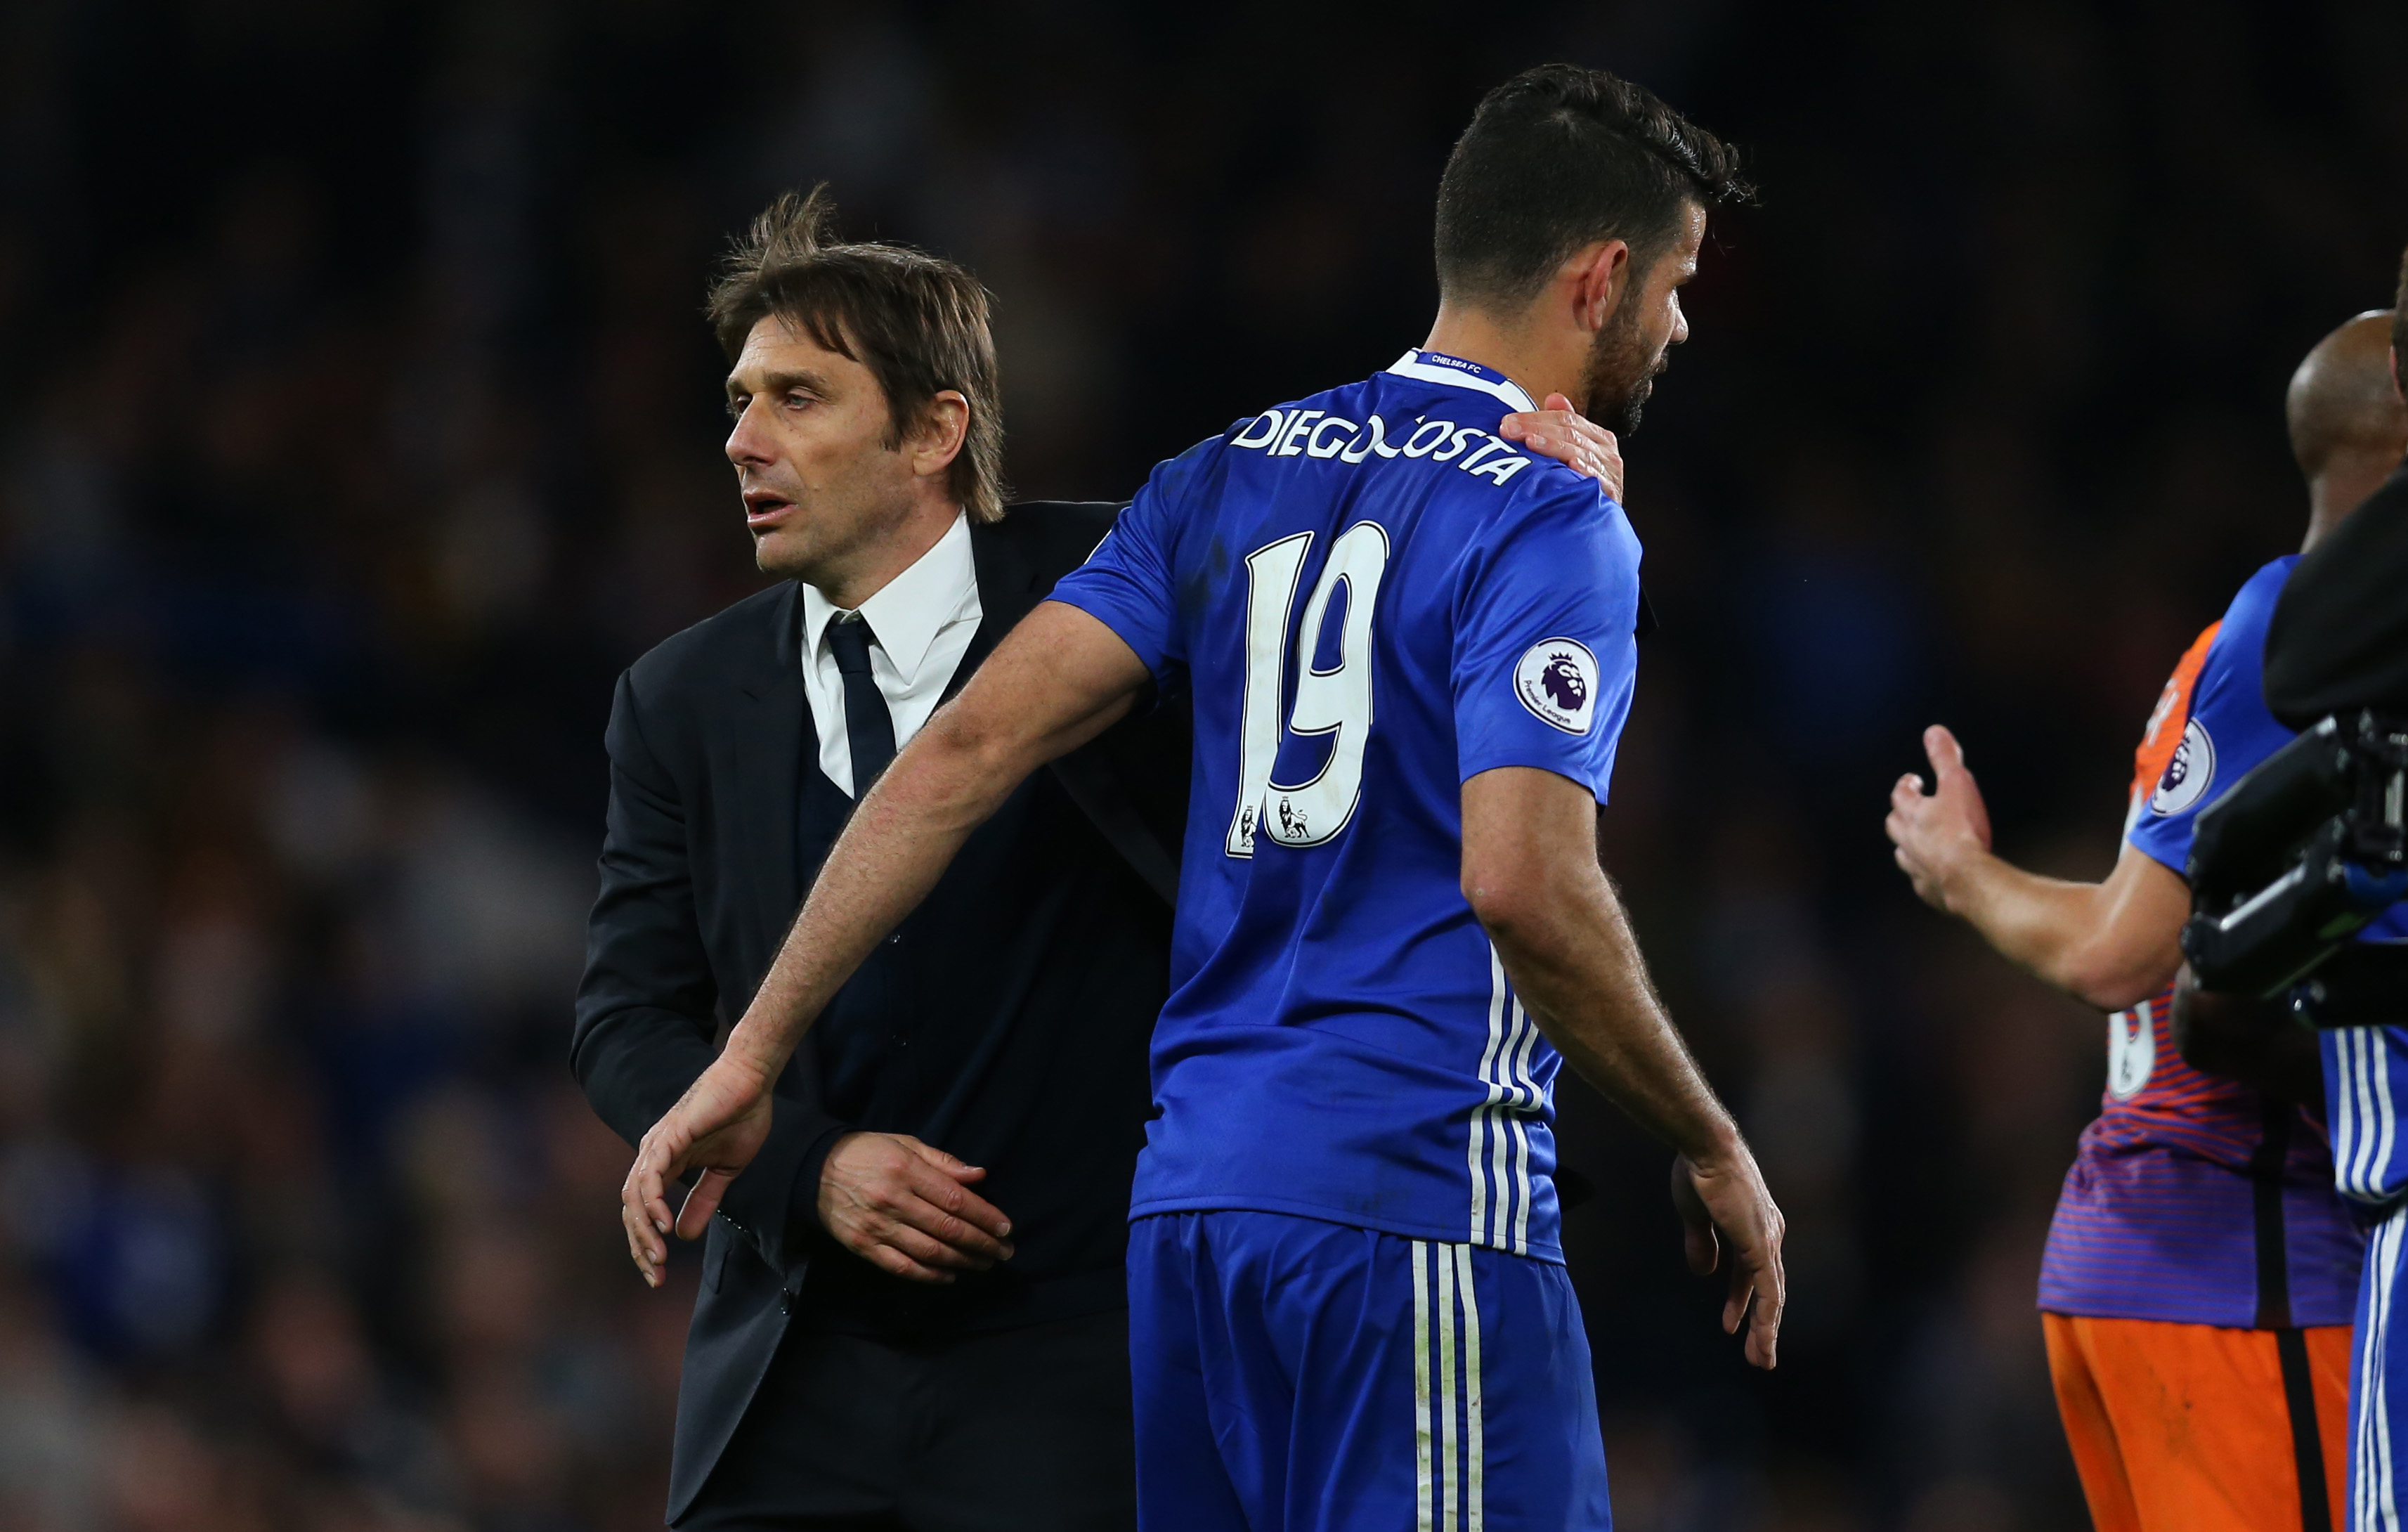 Diego Costa willing to stay at Chelsea in surprise transfer U-turn